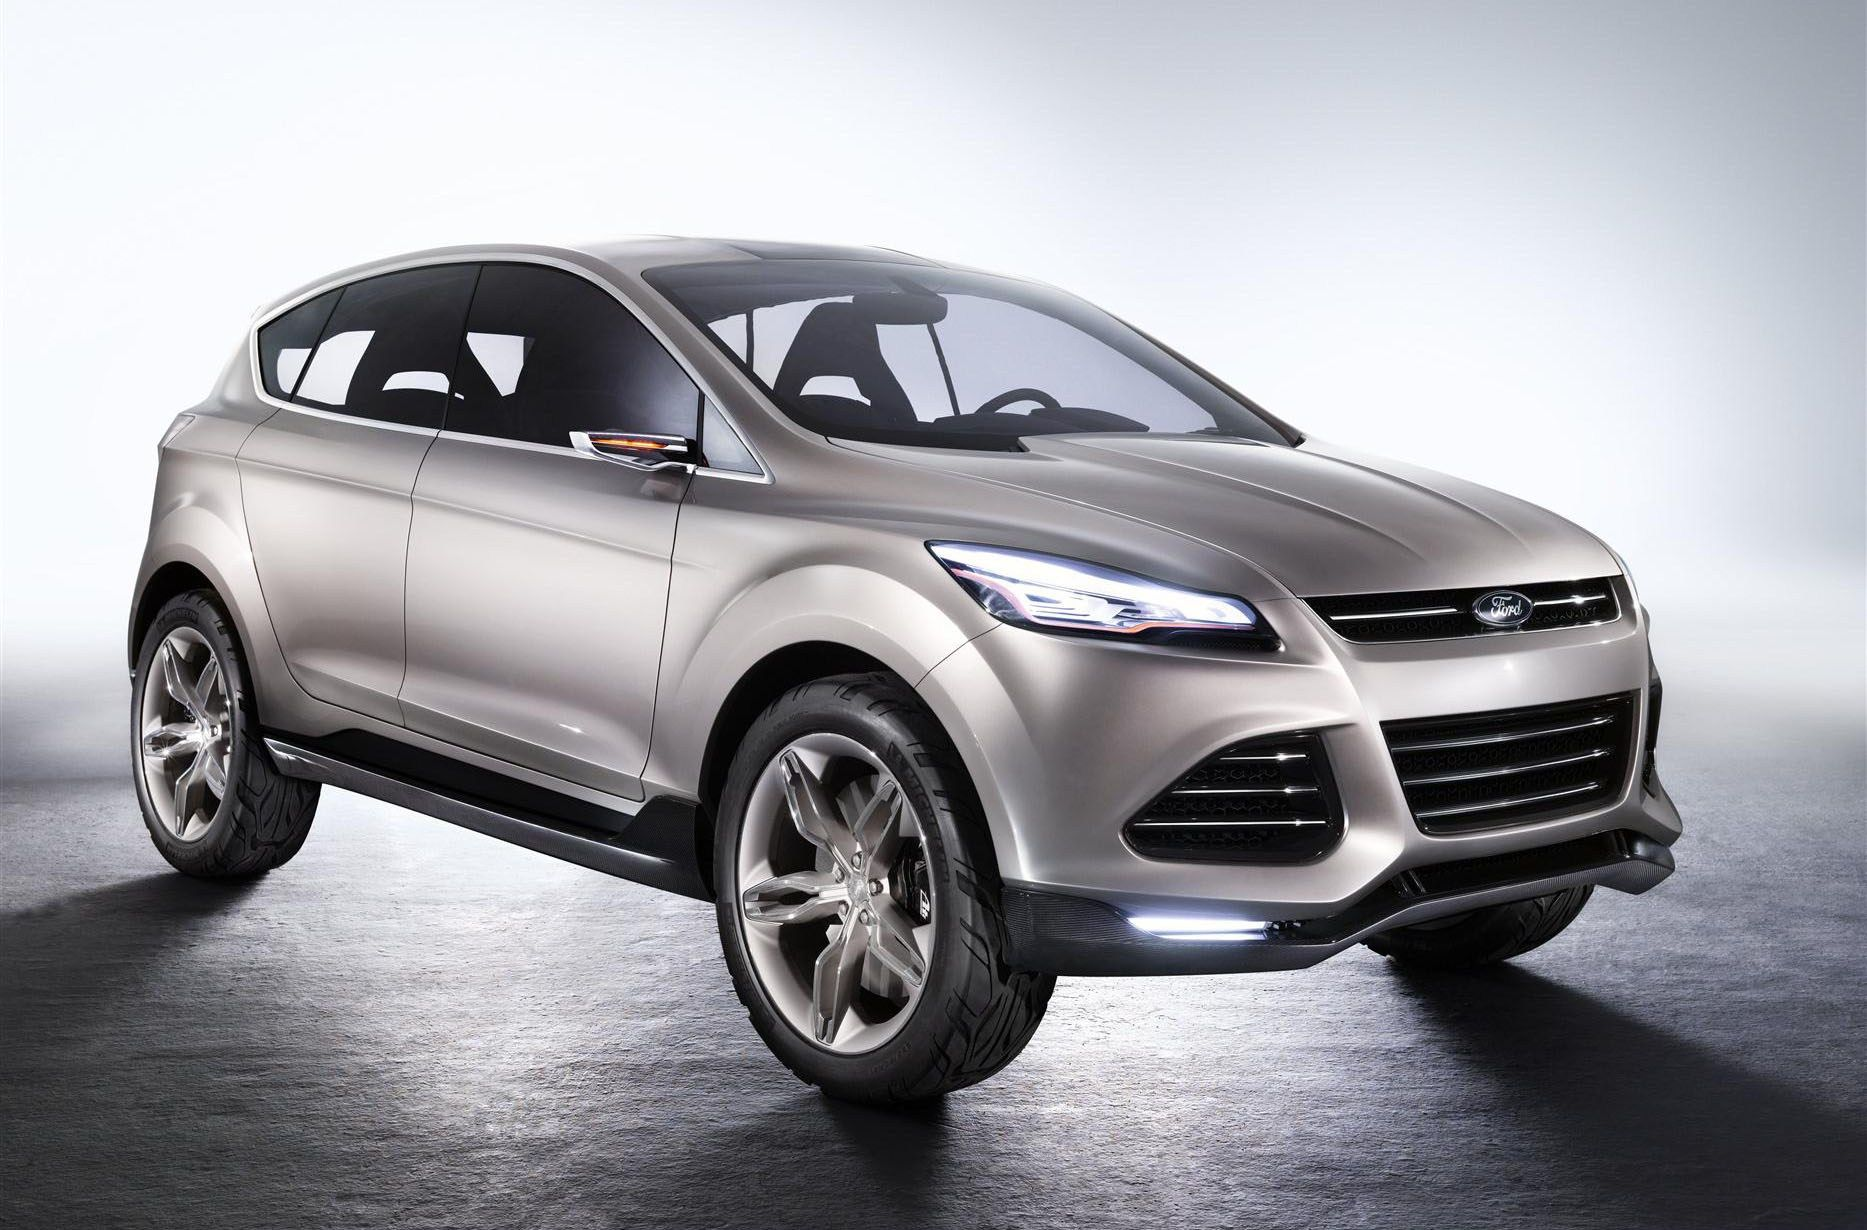 2020 ford escape redesign concept price release date rumor car rumor ford pinterest. Black Bedroom Furniture Sets. Home Design Ideas